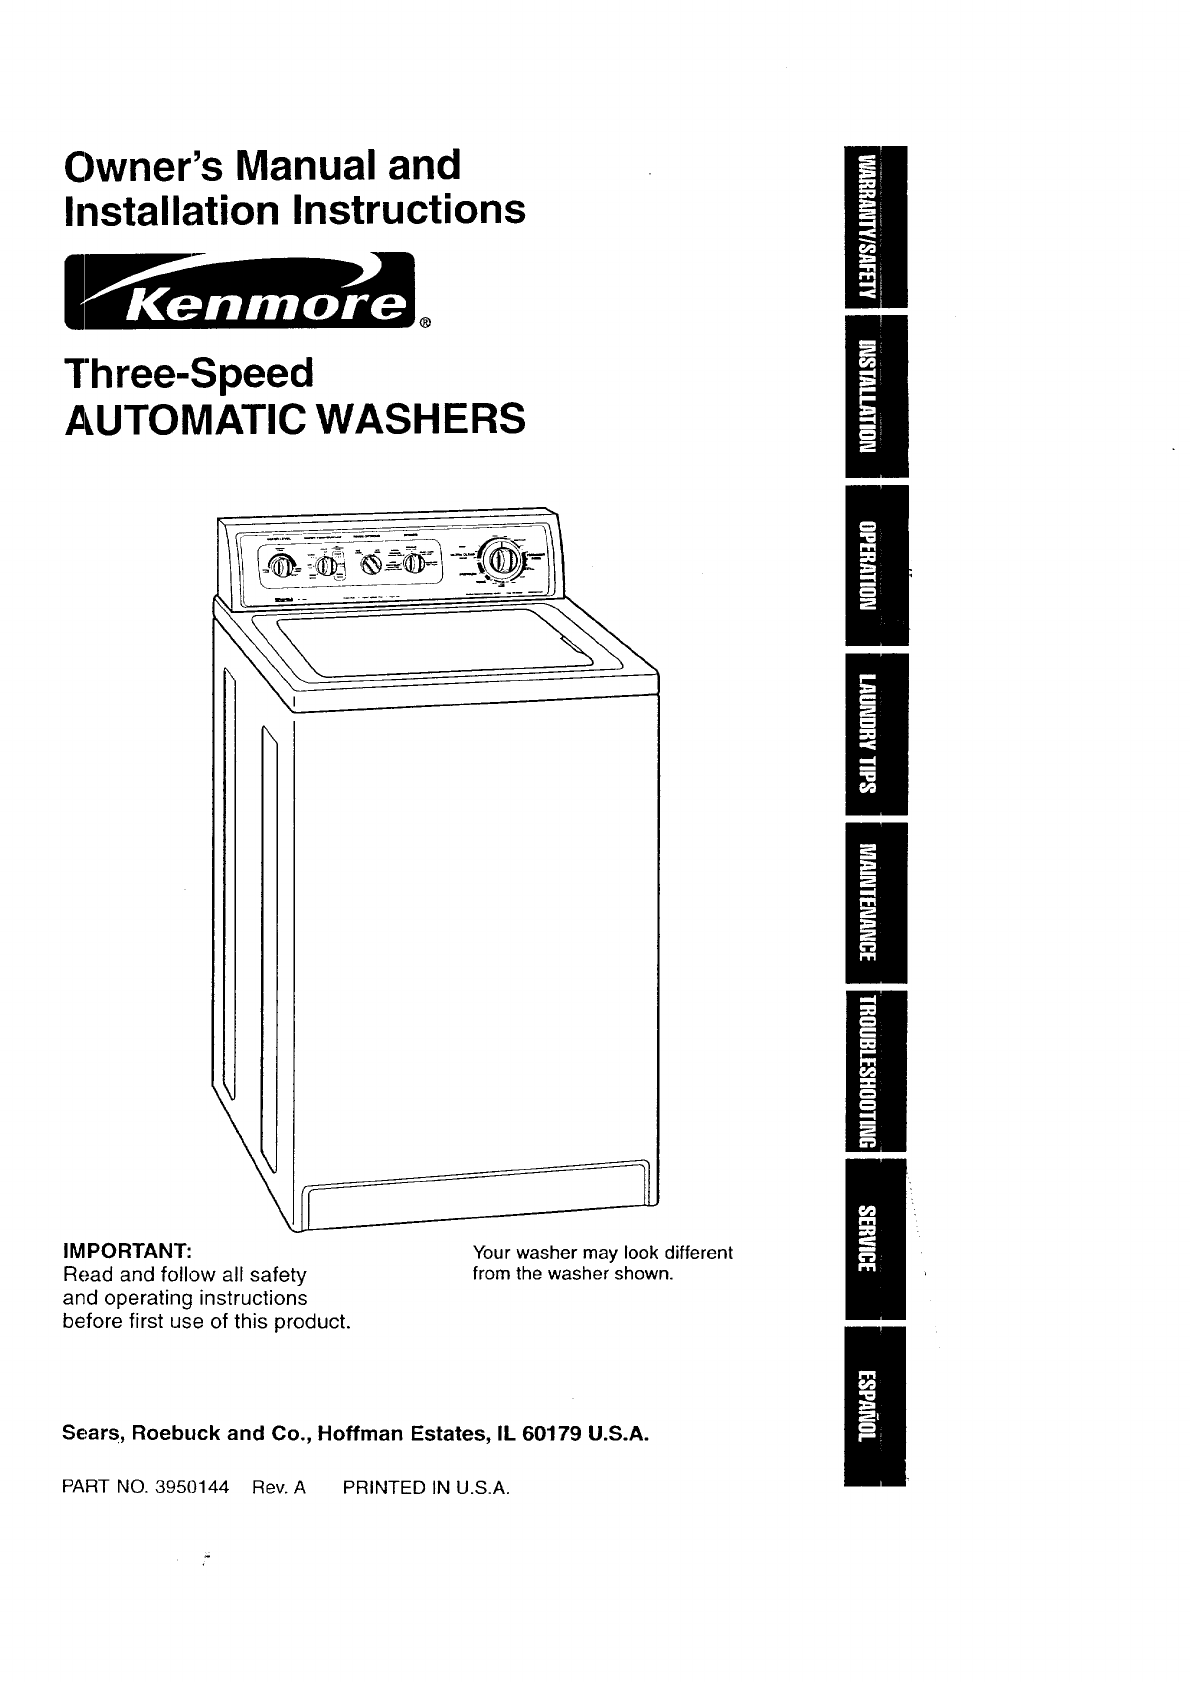 kenmore washer automatic washers user guide manualsonline com rh kitchen manualsonline com kenmore 800 series washer service manual kenmore 800 series washer repair manual